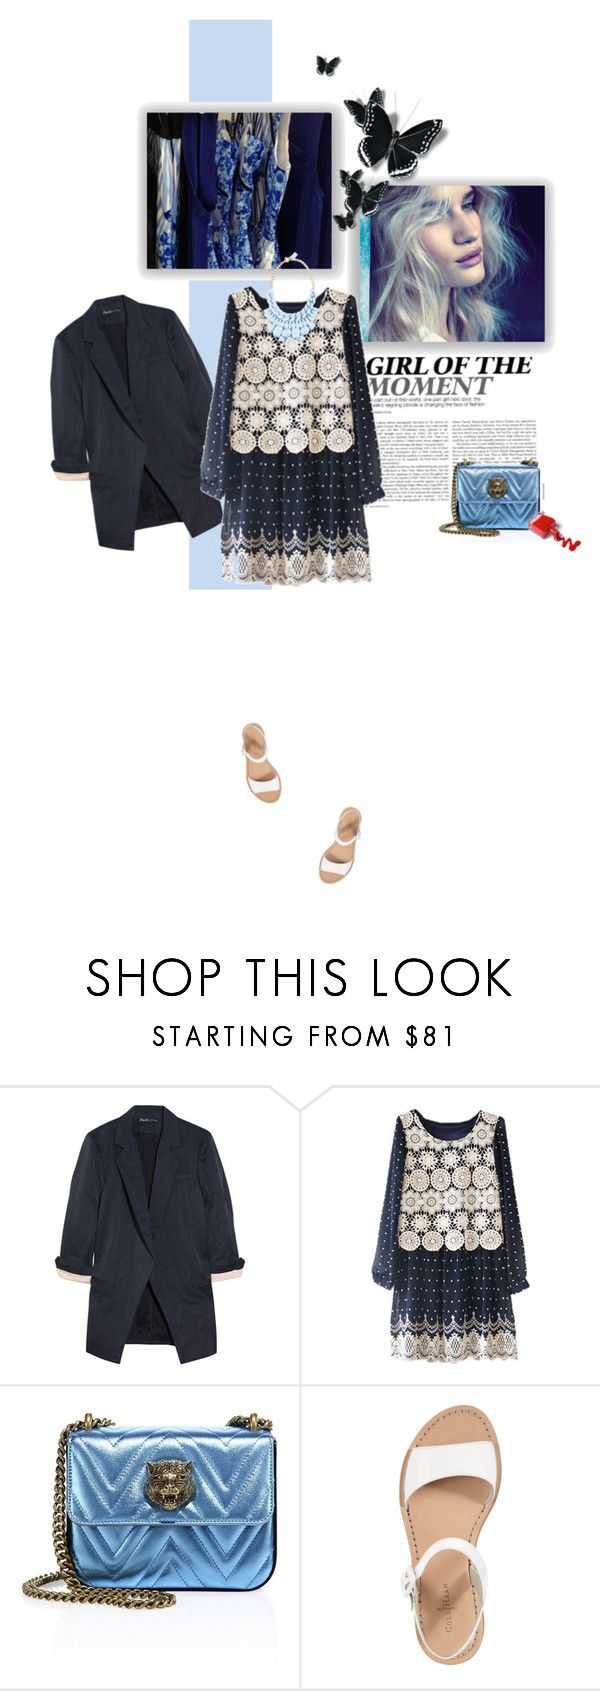 """""""Uno sguardo al passato"""" by piccolauby ❤ liked on Polyvore featuring Whiteley, Elizabeth and James, 10 Corso Como, Gucci and Cole Haan"""